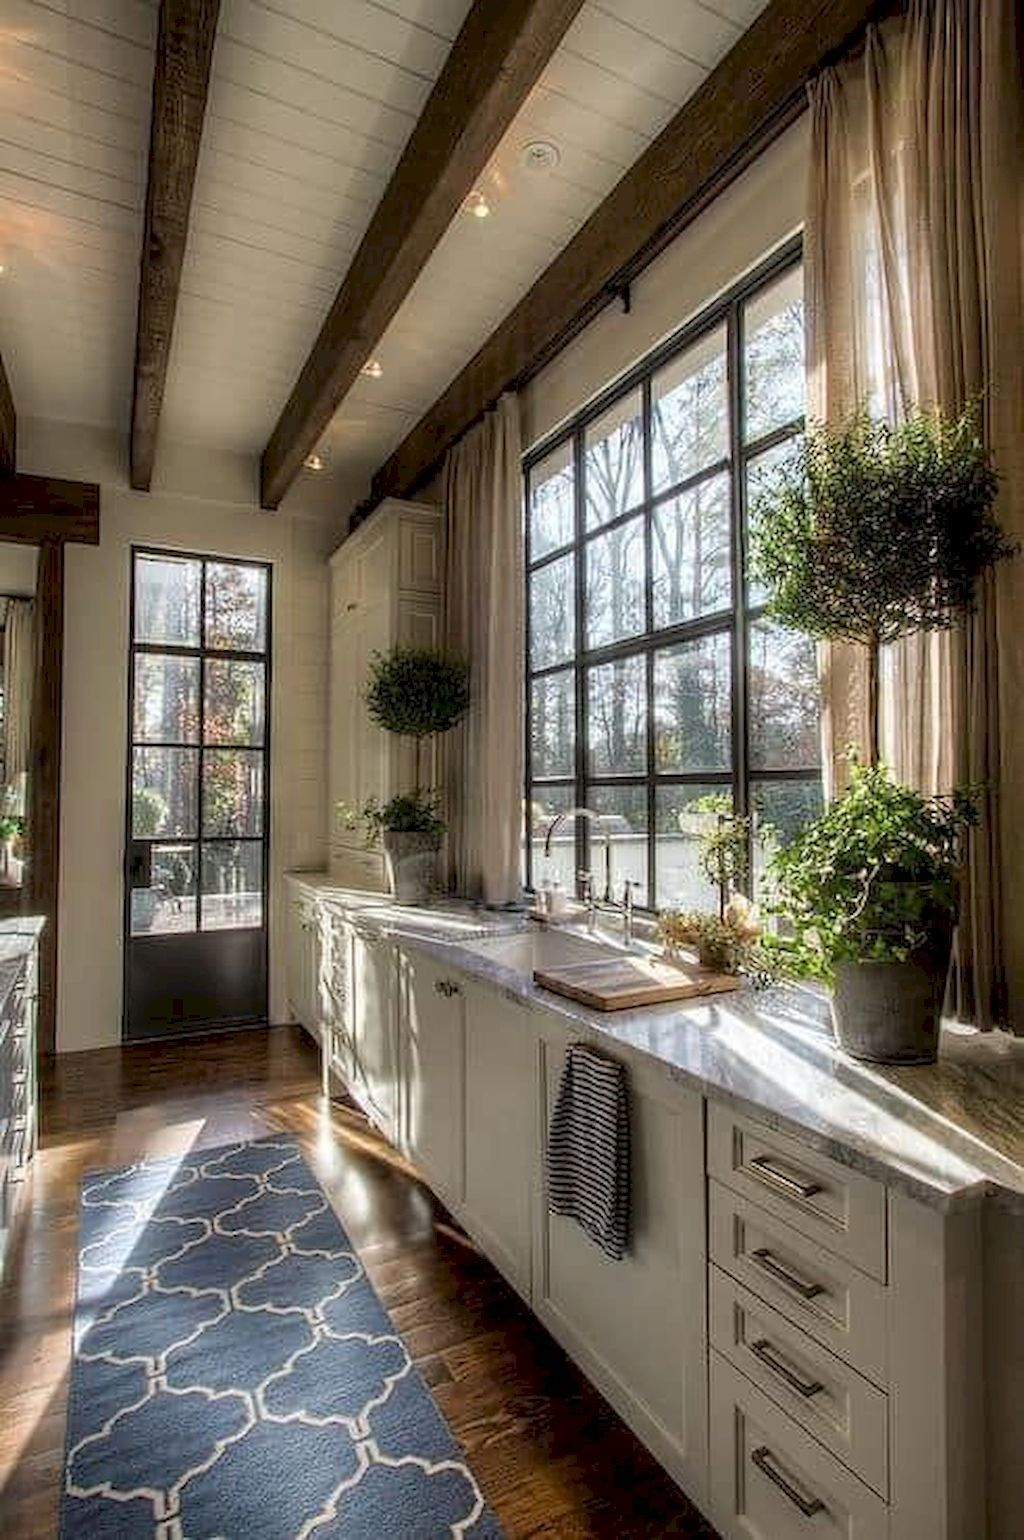 60 stunning french country kitchen decor ideas decorationroom galley kitchen design on kitchen remodel french country id=86444